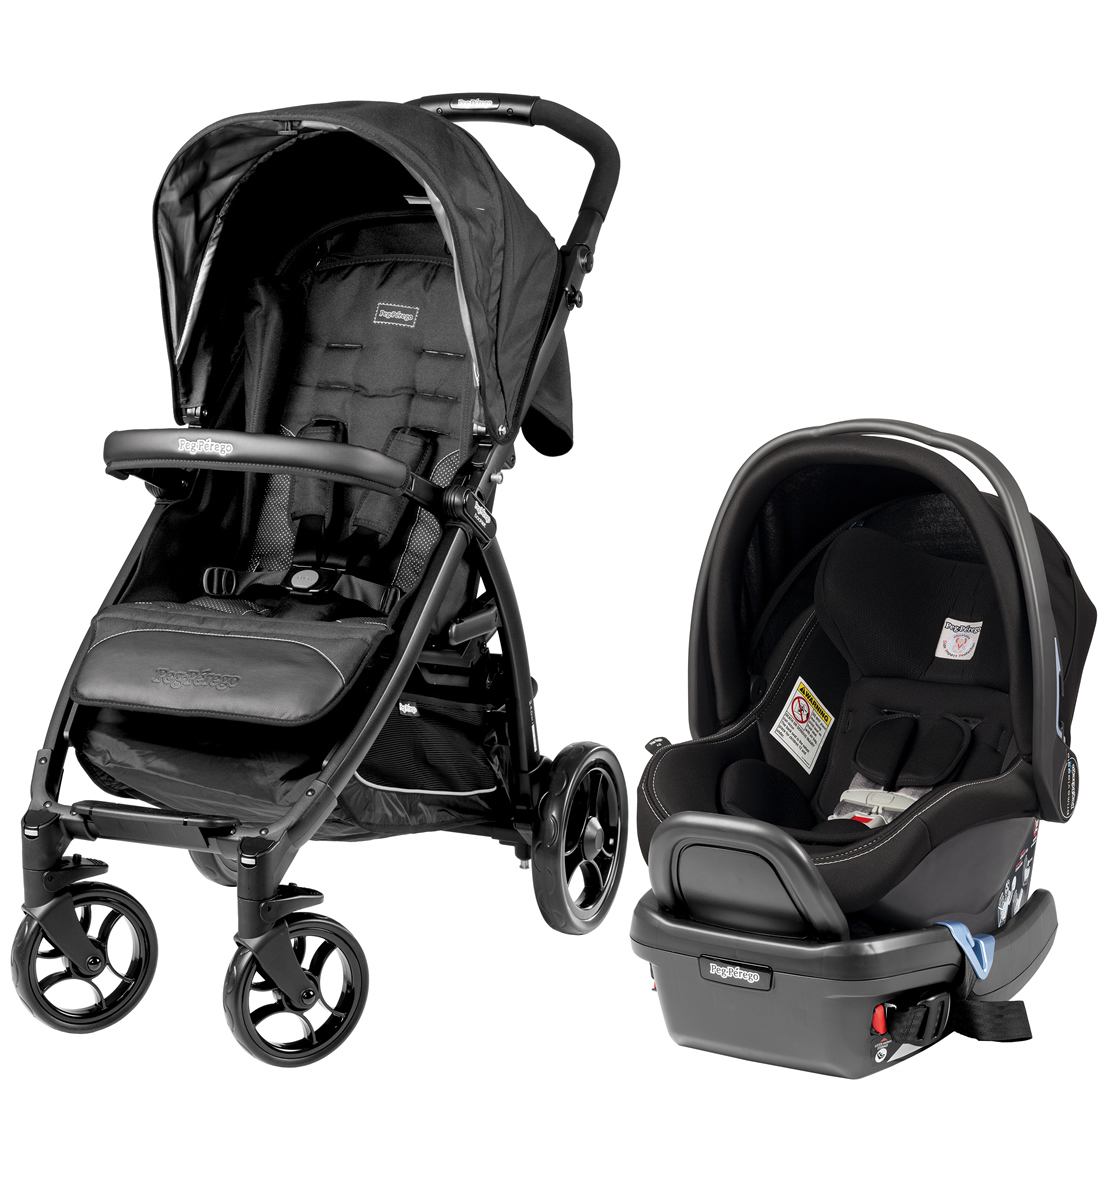 Peg-Perego Booklet Travel System - Onyx